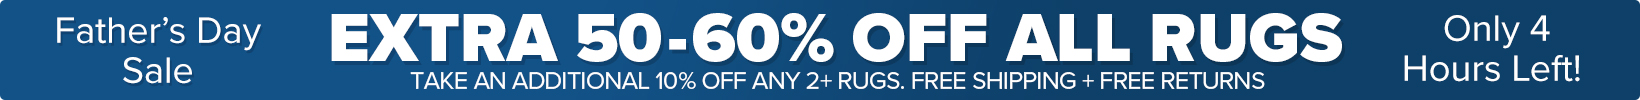 Banner that shows our current sale is an Extra 50-60% Off All Rugs